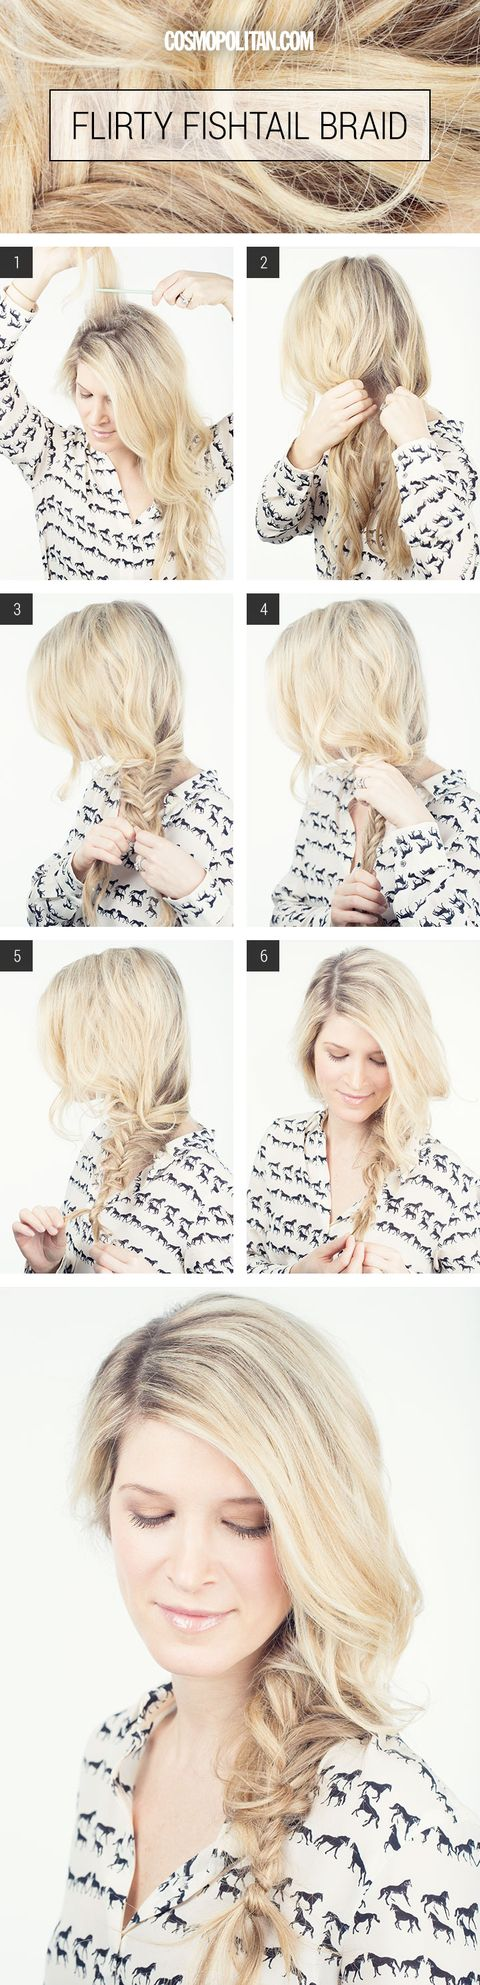 How to Make A Fishtail Braid - Sexy and Sultry Braided Hairstyles ...